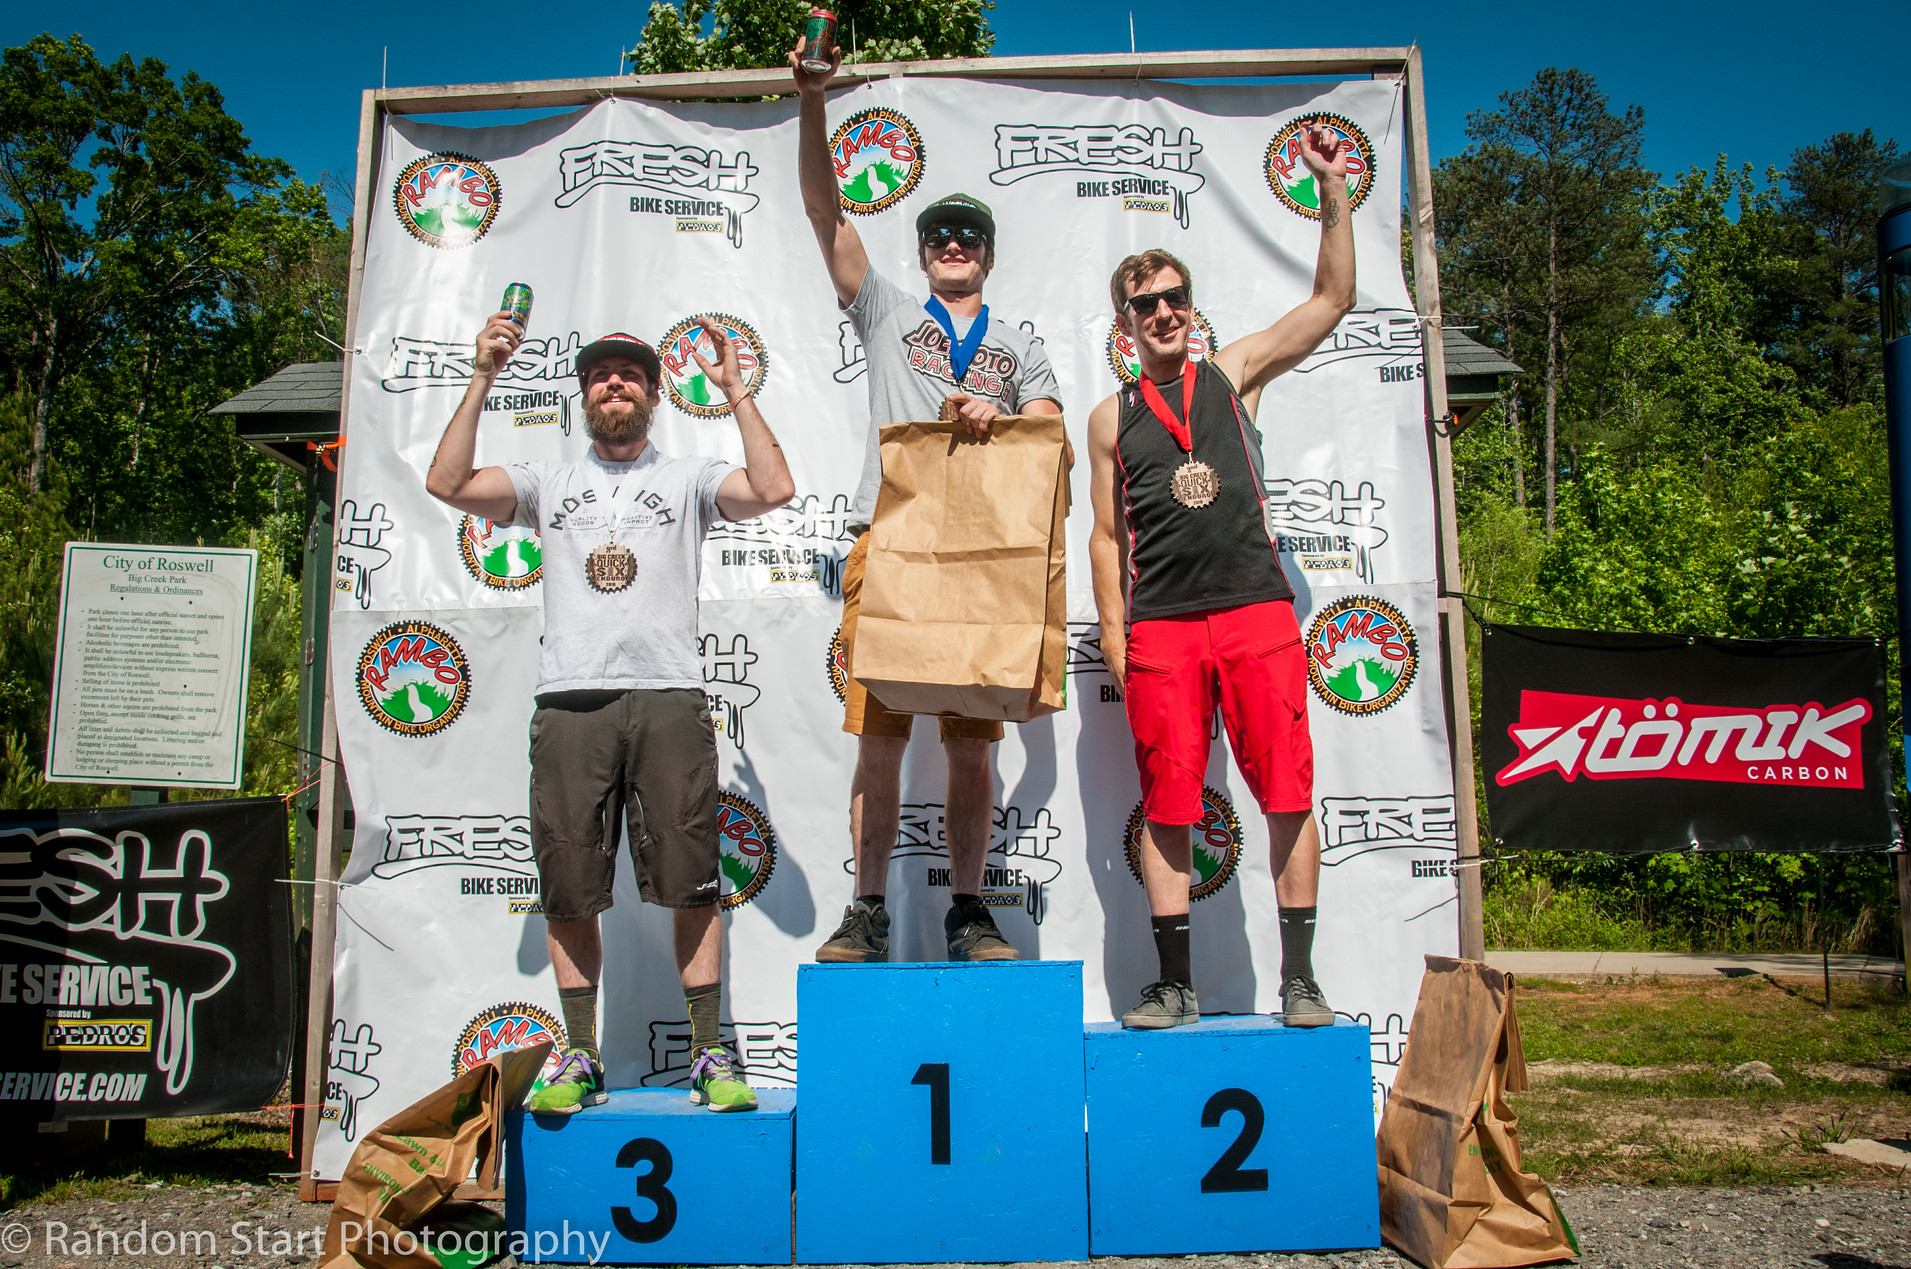 Expert Men Podium (Ben Hobbs, Chris Wyatt, Ross Monckton) - Photo: Random Start Photography